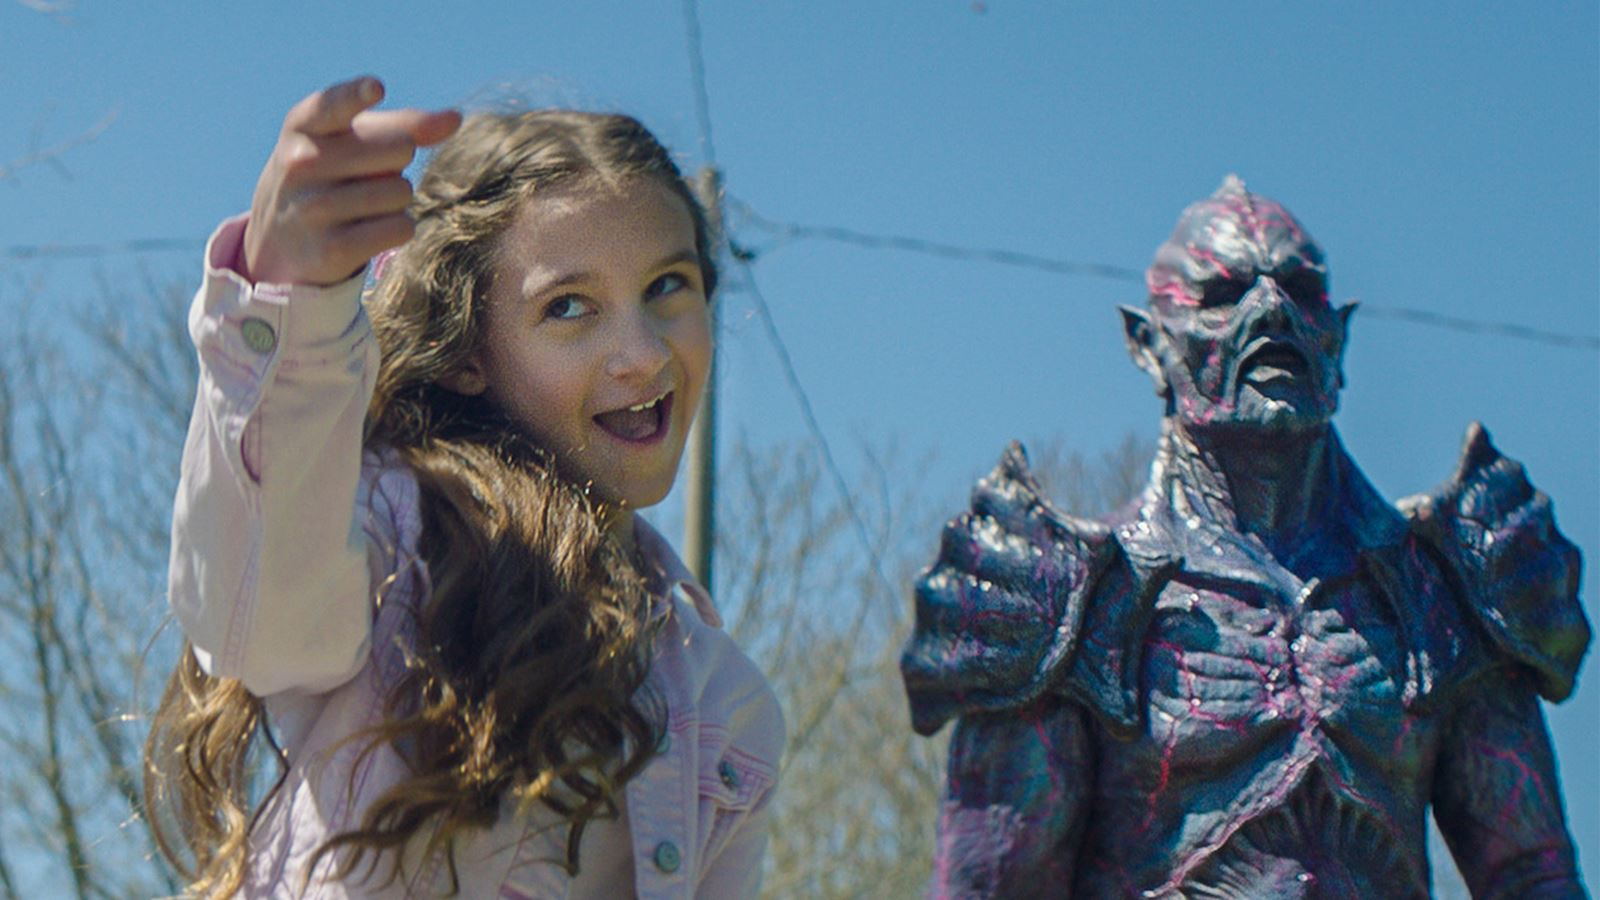 little girl points, smiling, with monster behind her